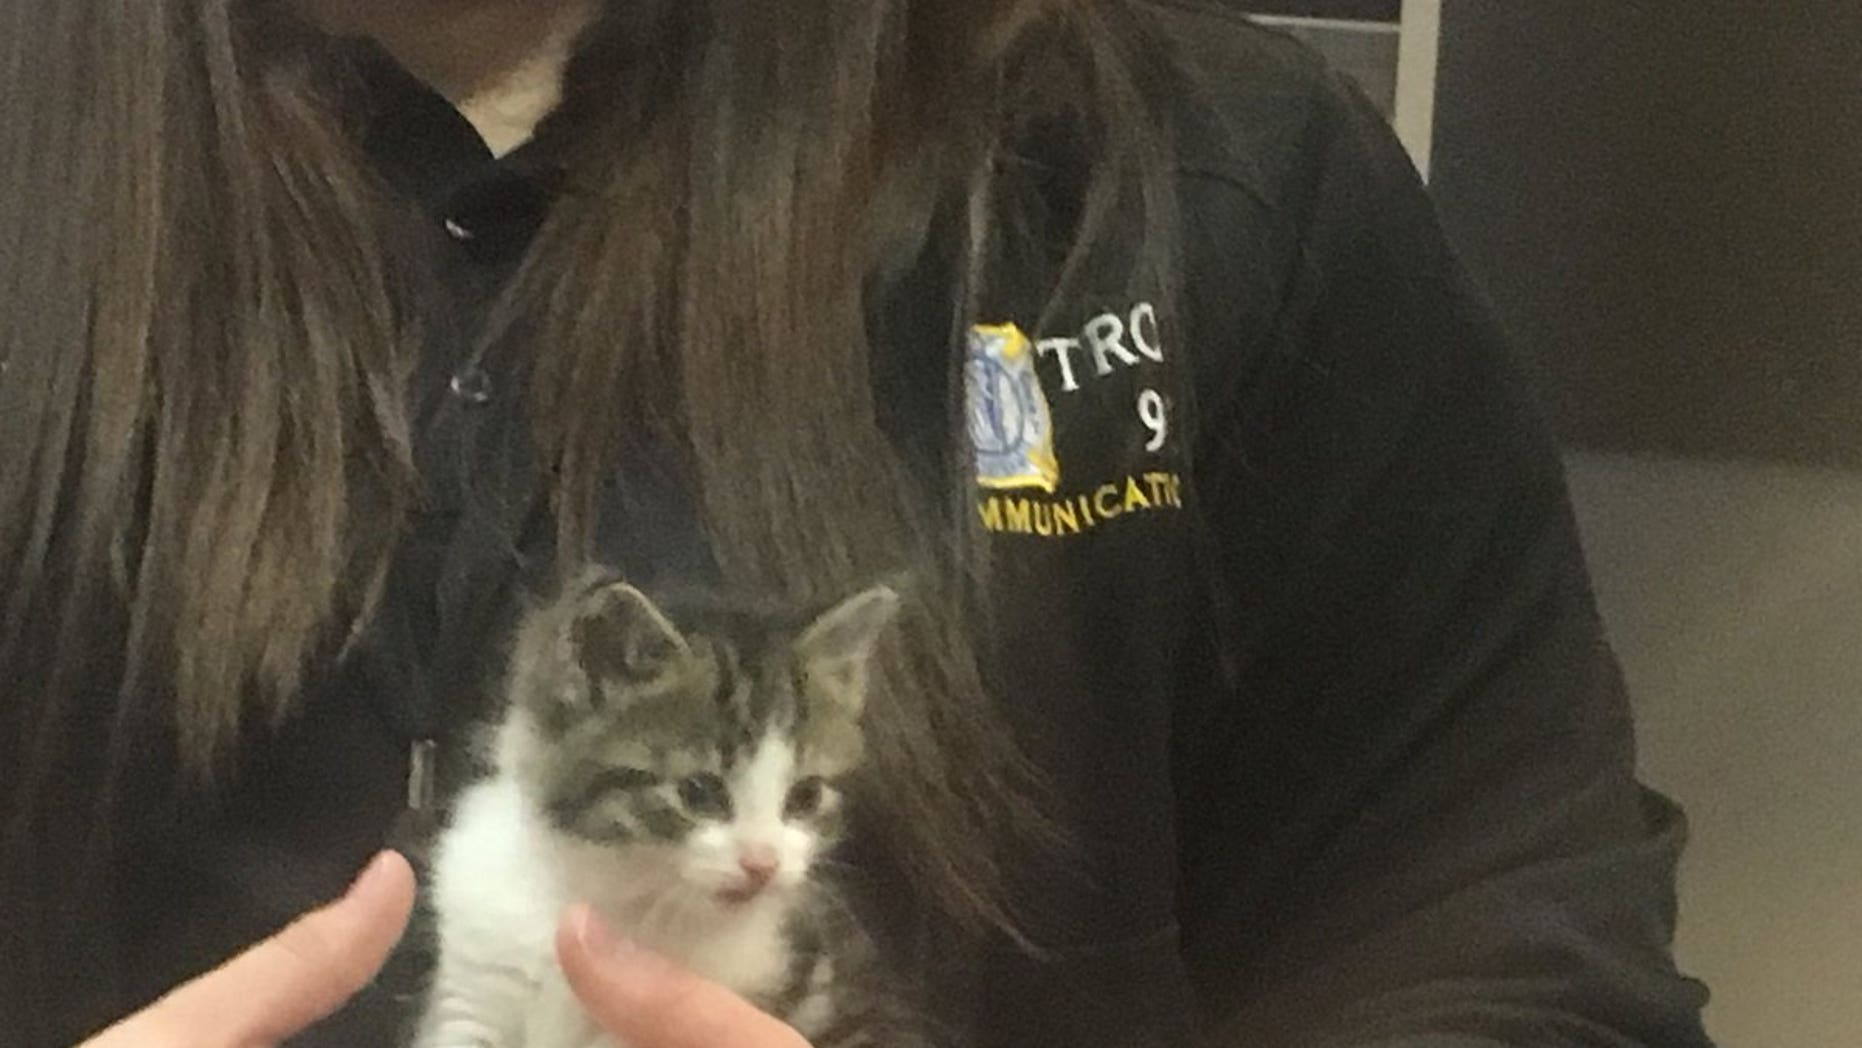 A female cat which joined the Troy police department in April has officially been named authorities said Tuesday on social media.